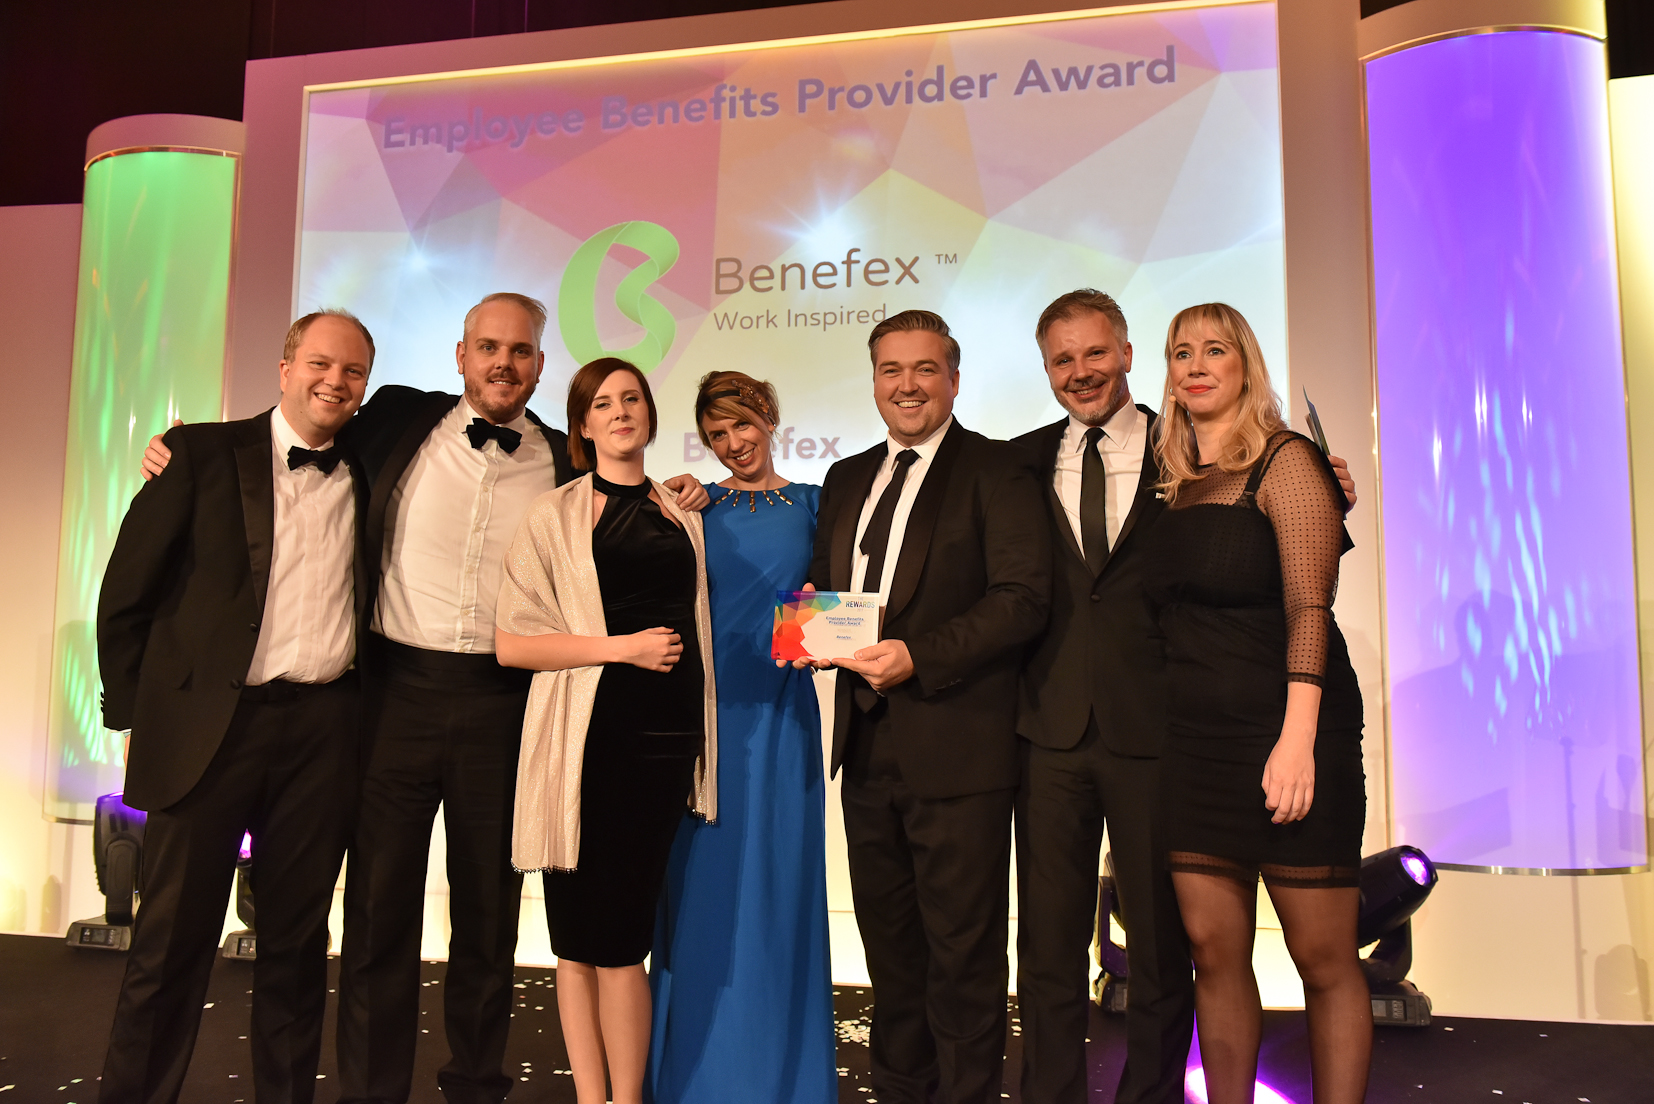 Winners 2017 - 6 Employee Benefits Provider Award